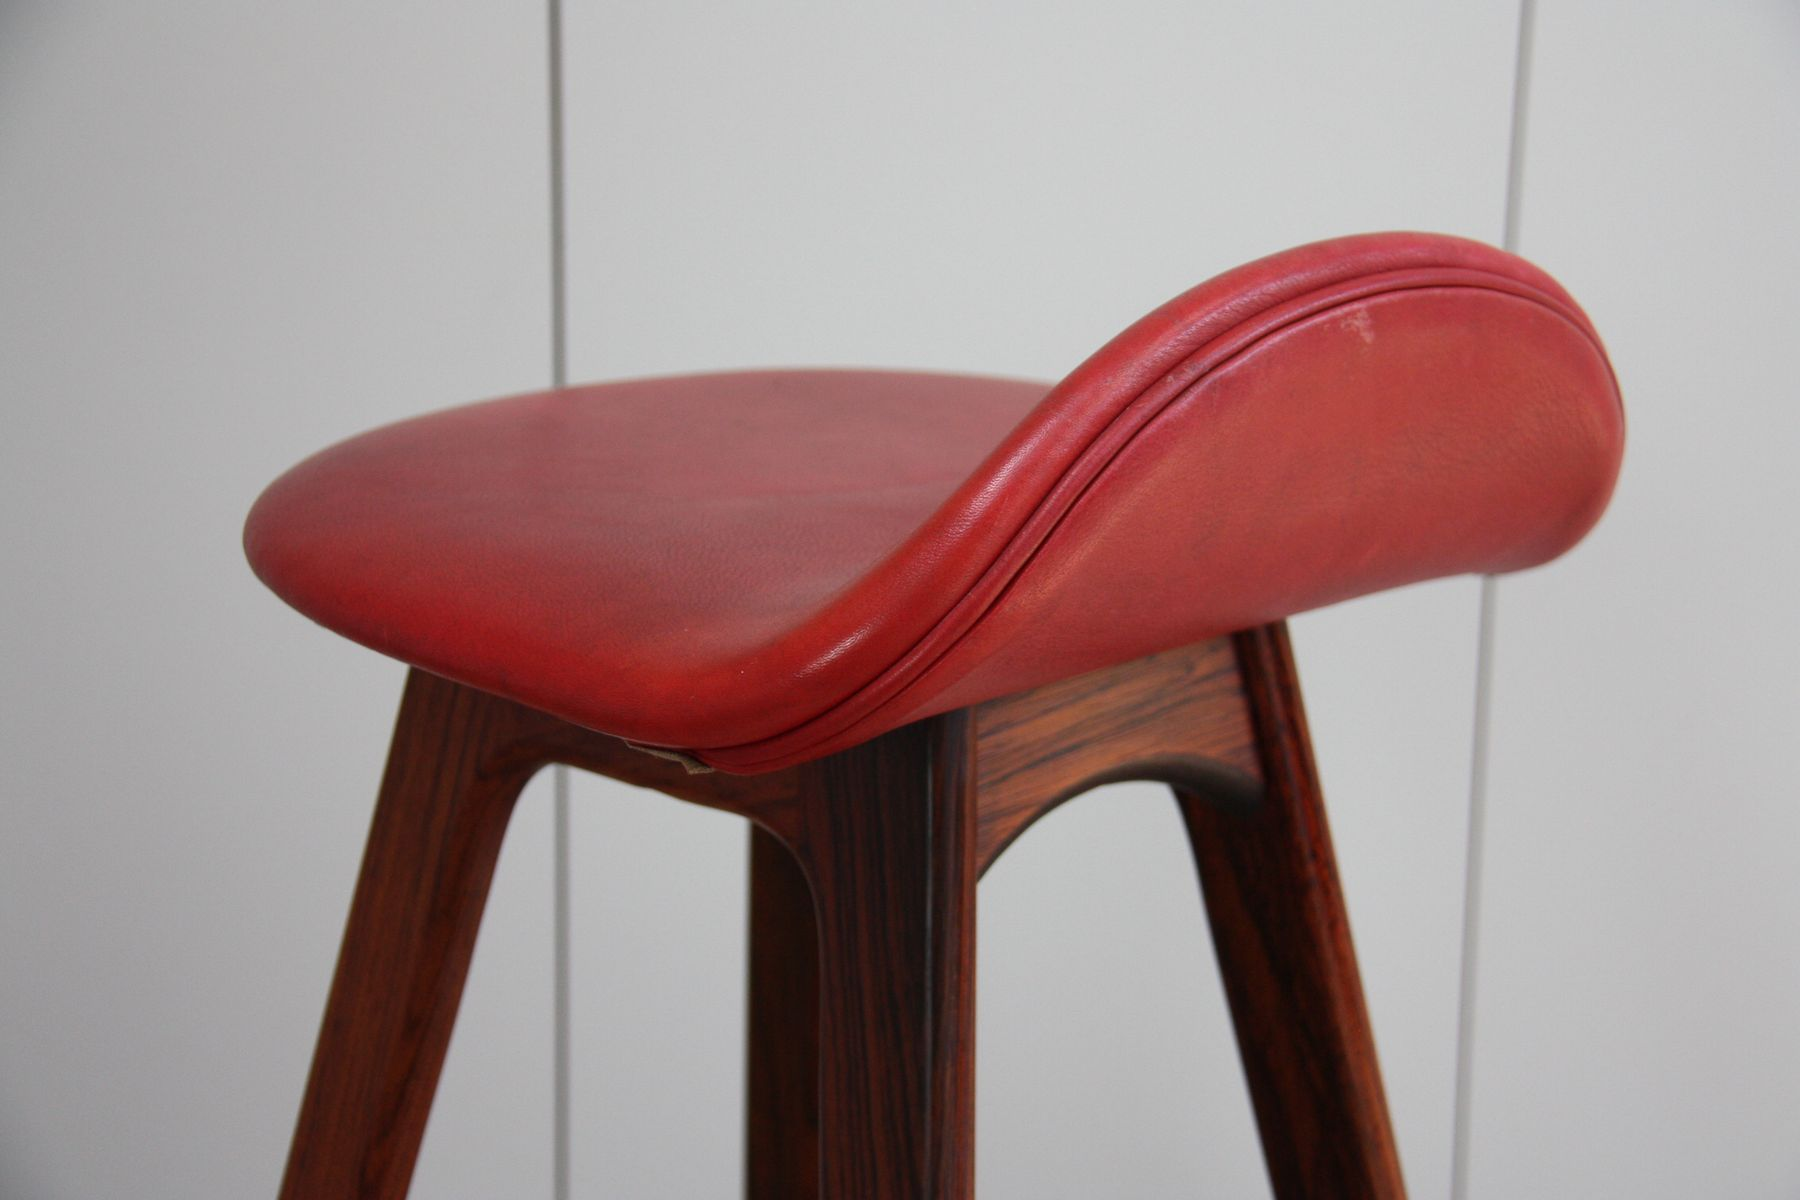 Vintage bar stool in rosewood by erik buch for dyrlund for sale at pamono - Erik buch bar stool ...